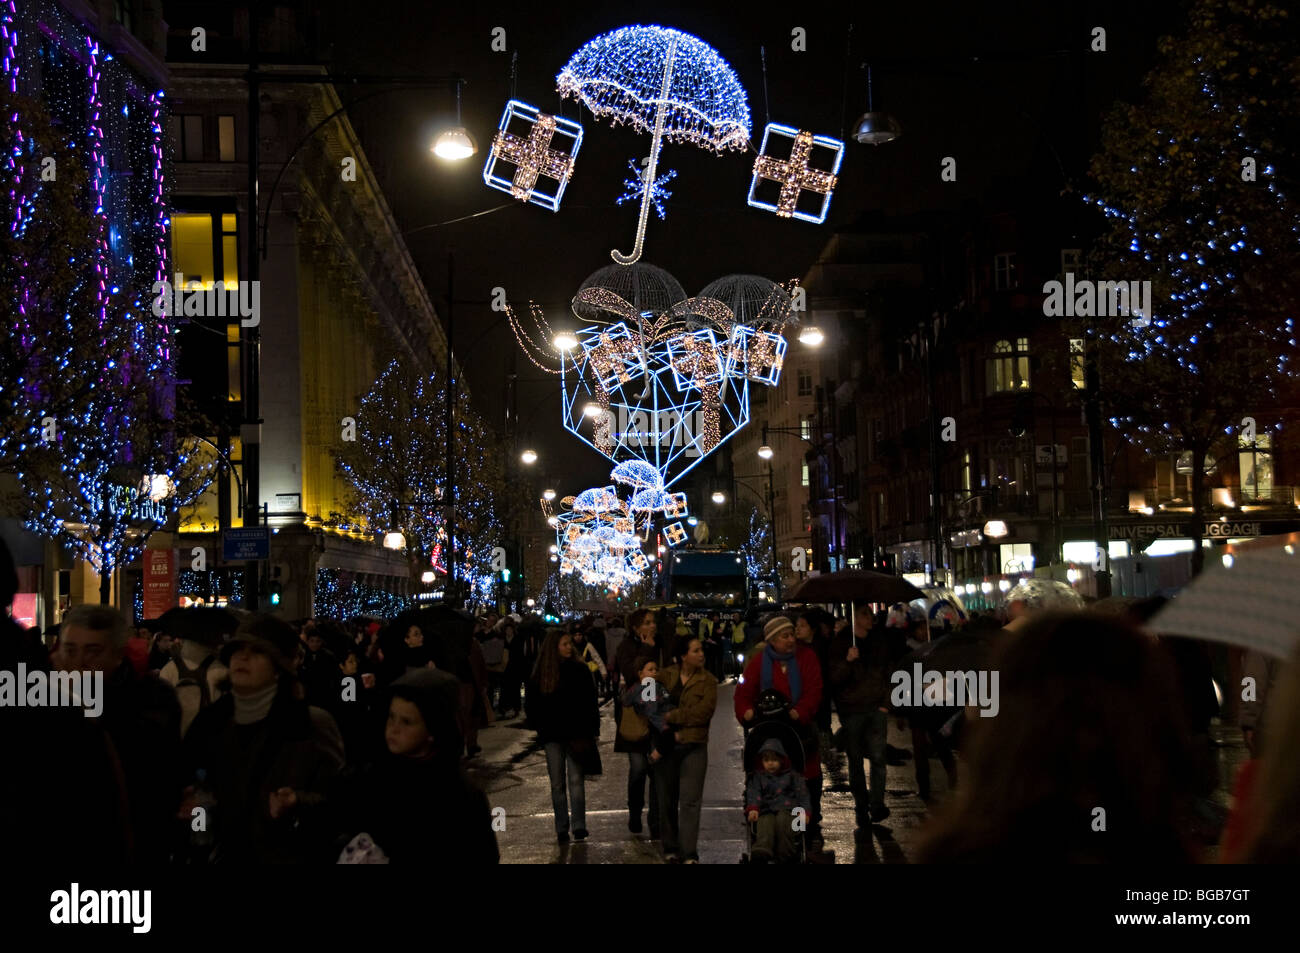 london oxford street  Christmas lights  in 2009 being turned on with crowds of shoppers - Stock Image